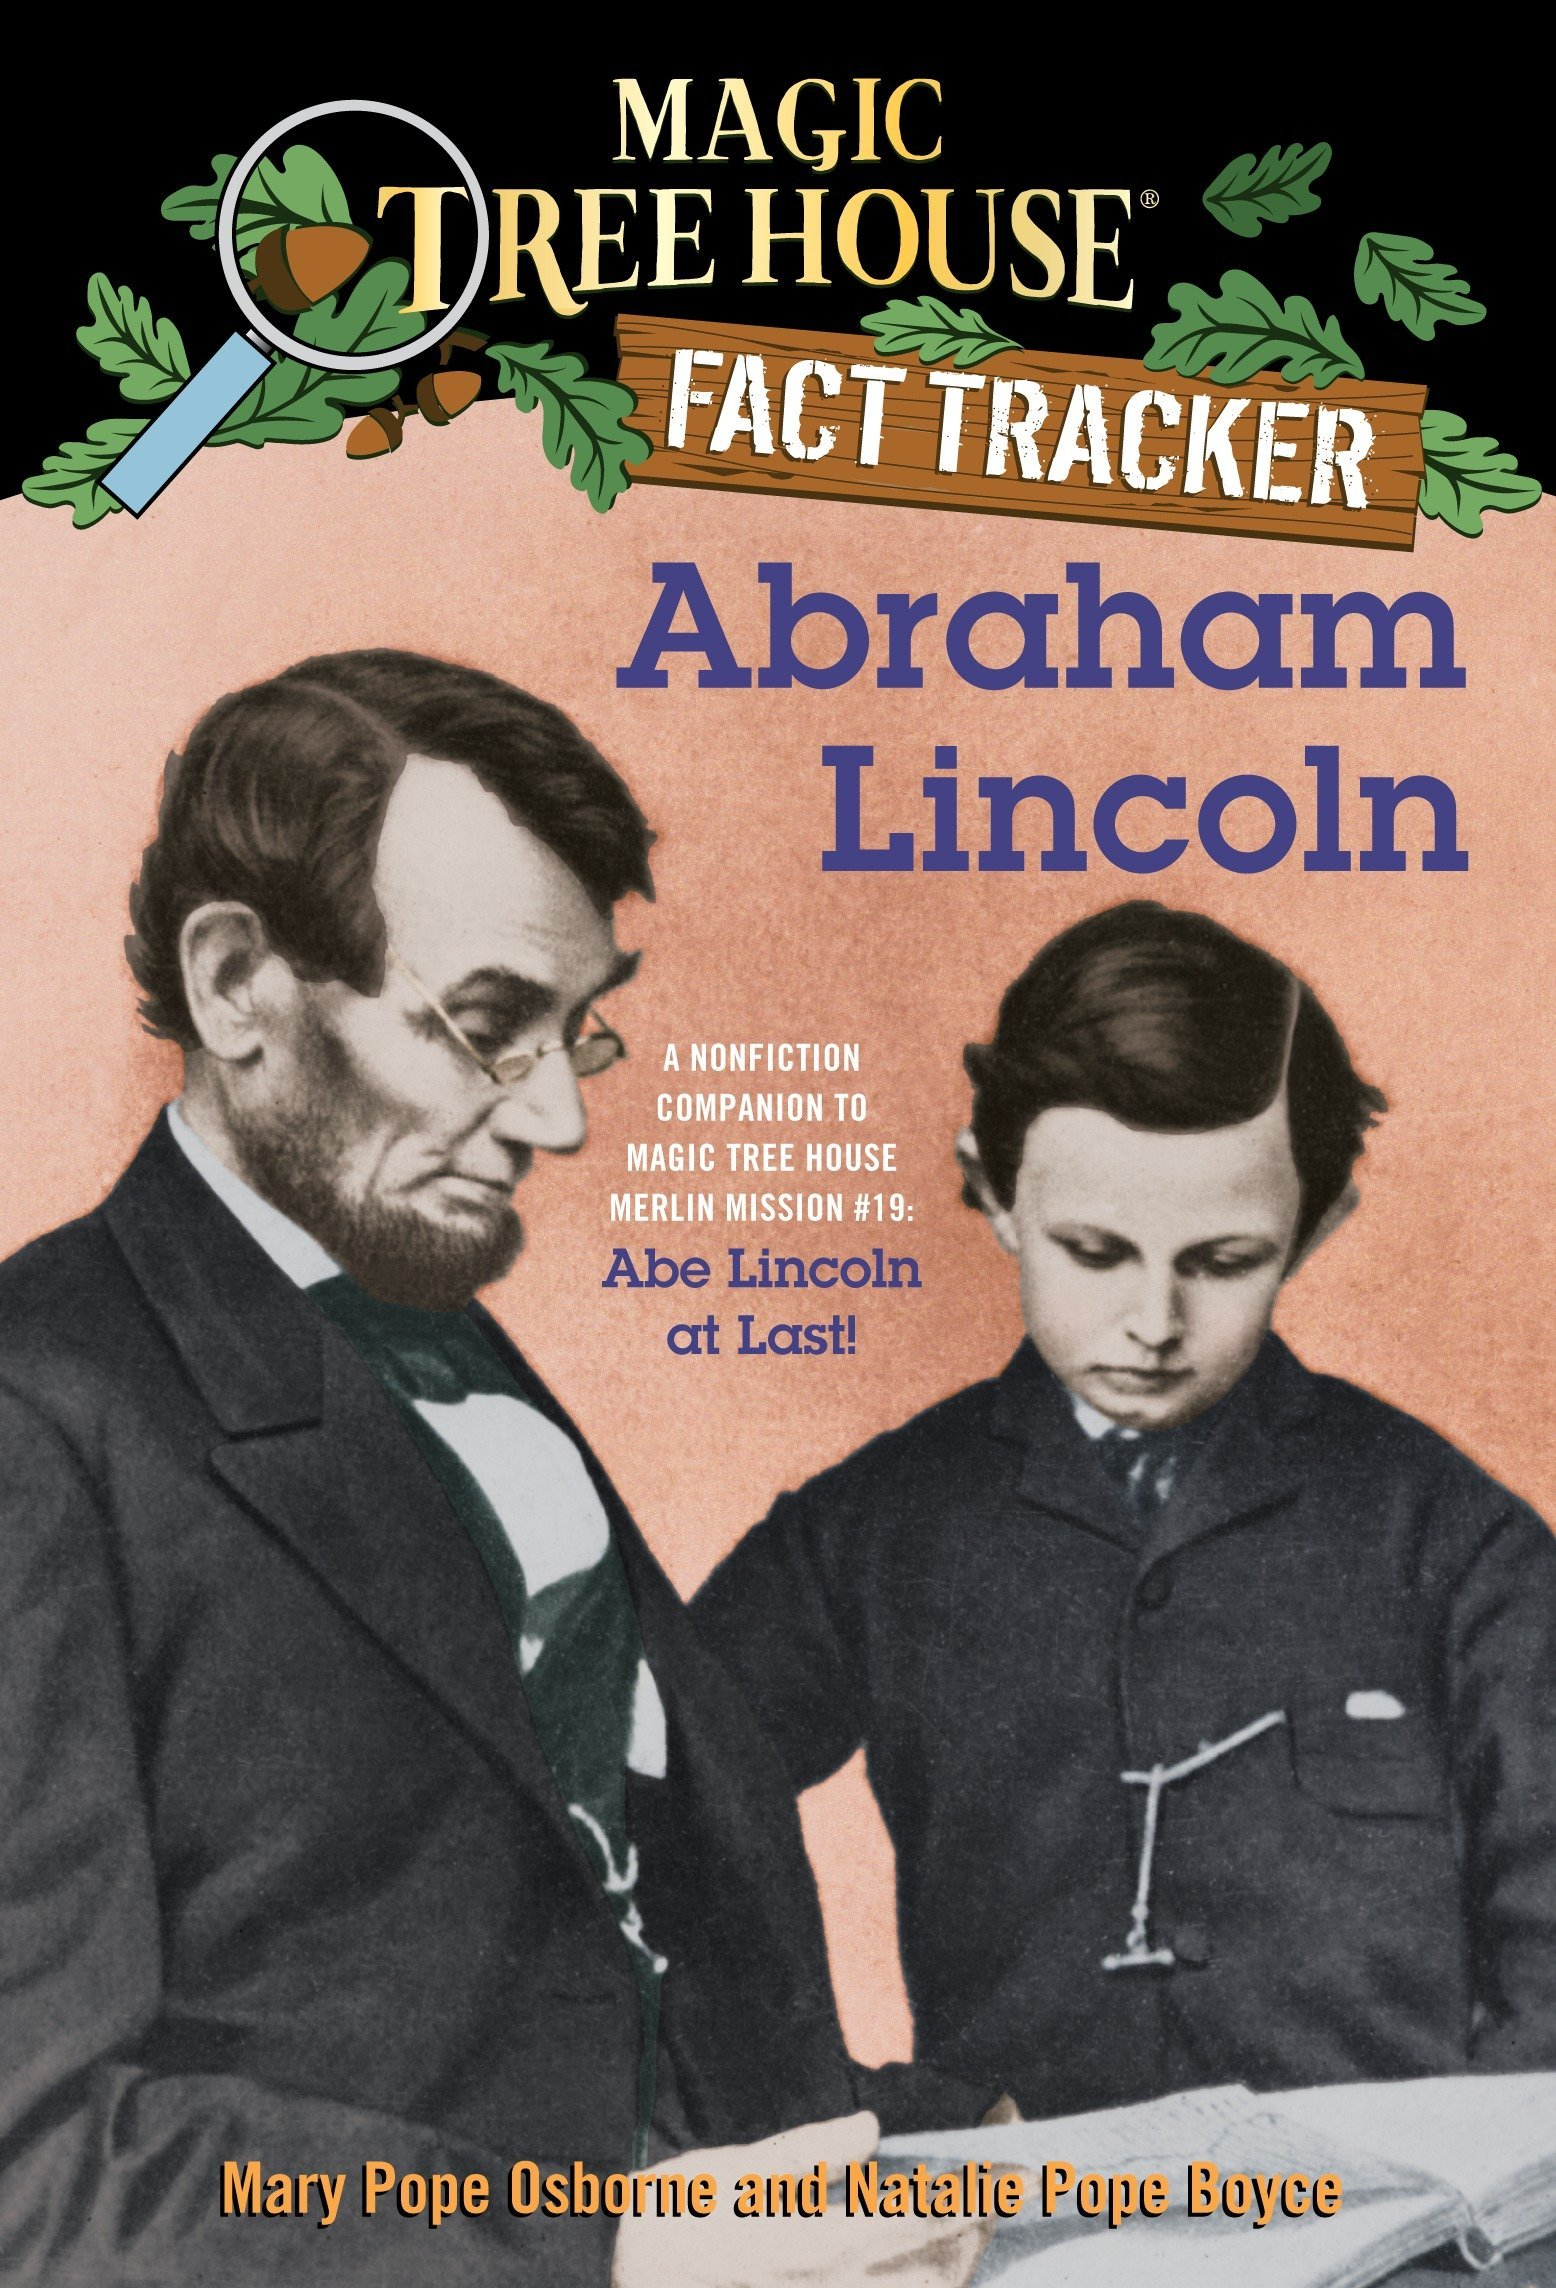 Magic Tree House Fact Tracker: Abraham Lincoln: A Nonfiction Companion to Magic Tree House #47: Abe Lincoln at Last! Paperback – December 27, 2011 Mary Pope Osborne Natalie Pope Boyce Sal Murdocca 0375870245